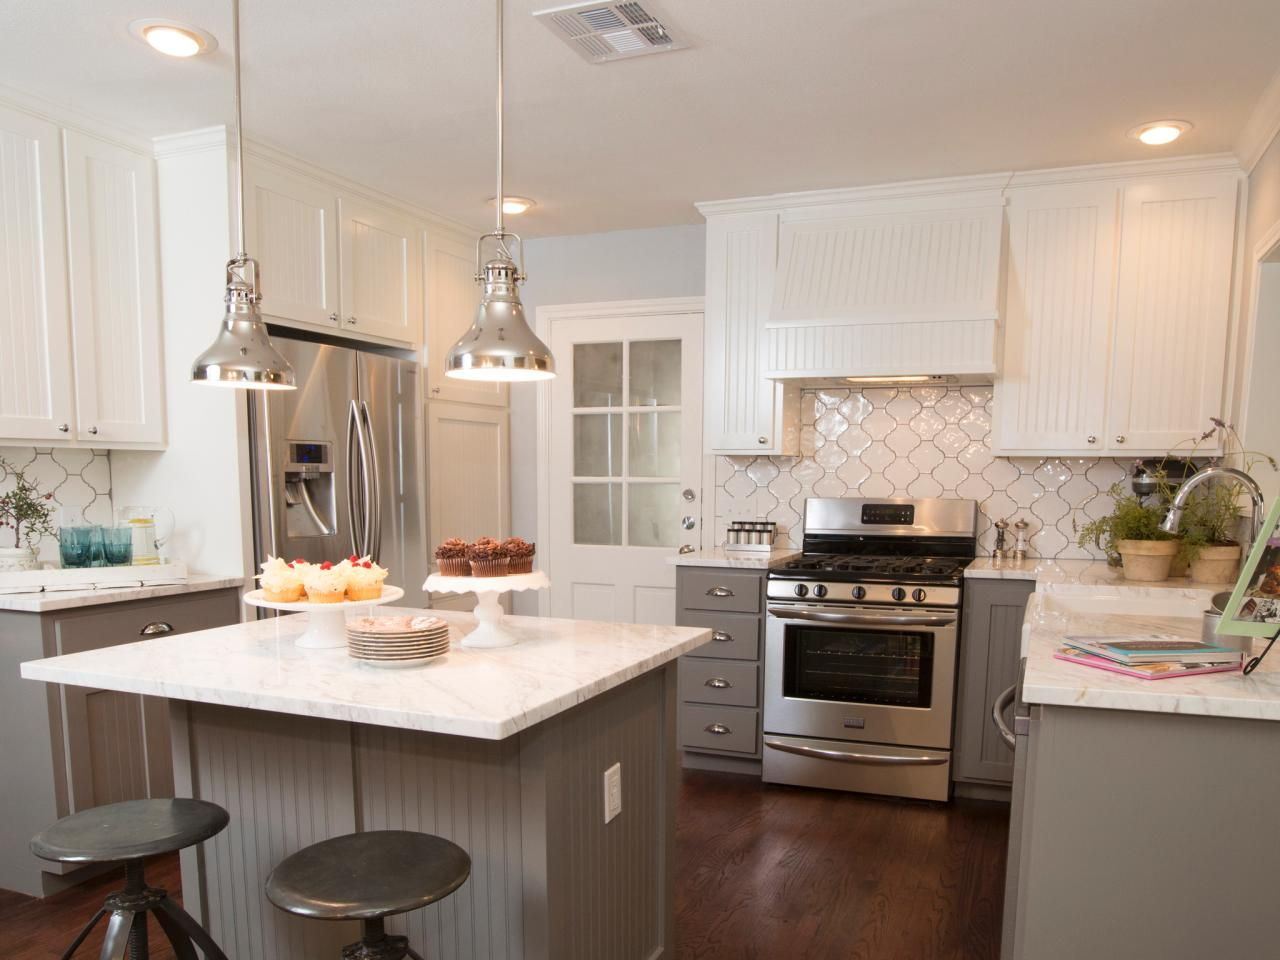 Fixer upper farm kitchens - 17 Best Images About Fixer Upper On Pinterest Magnolia Homes Cabinets And Magnolia House